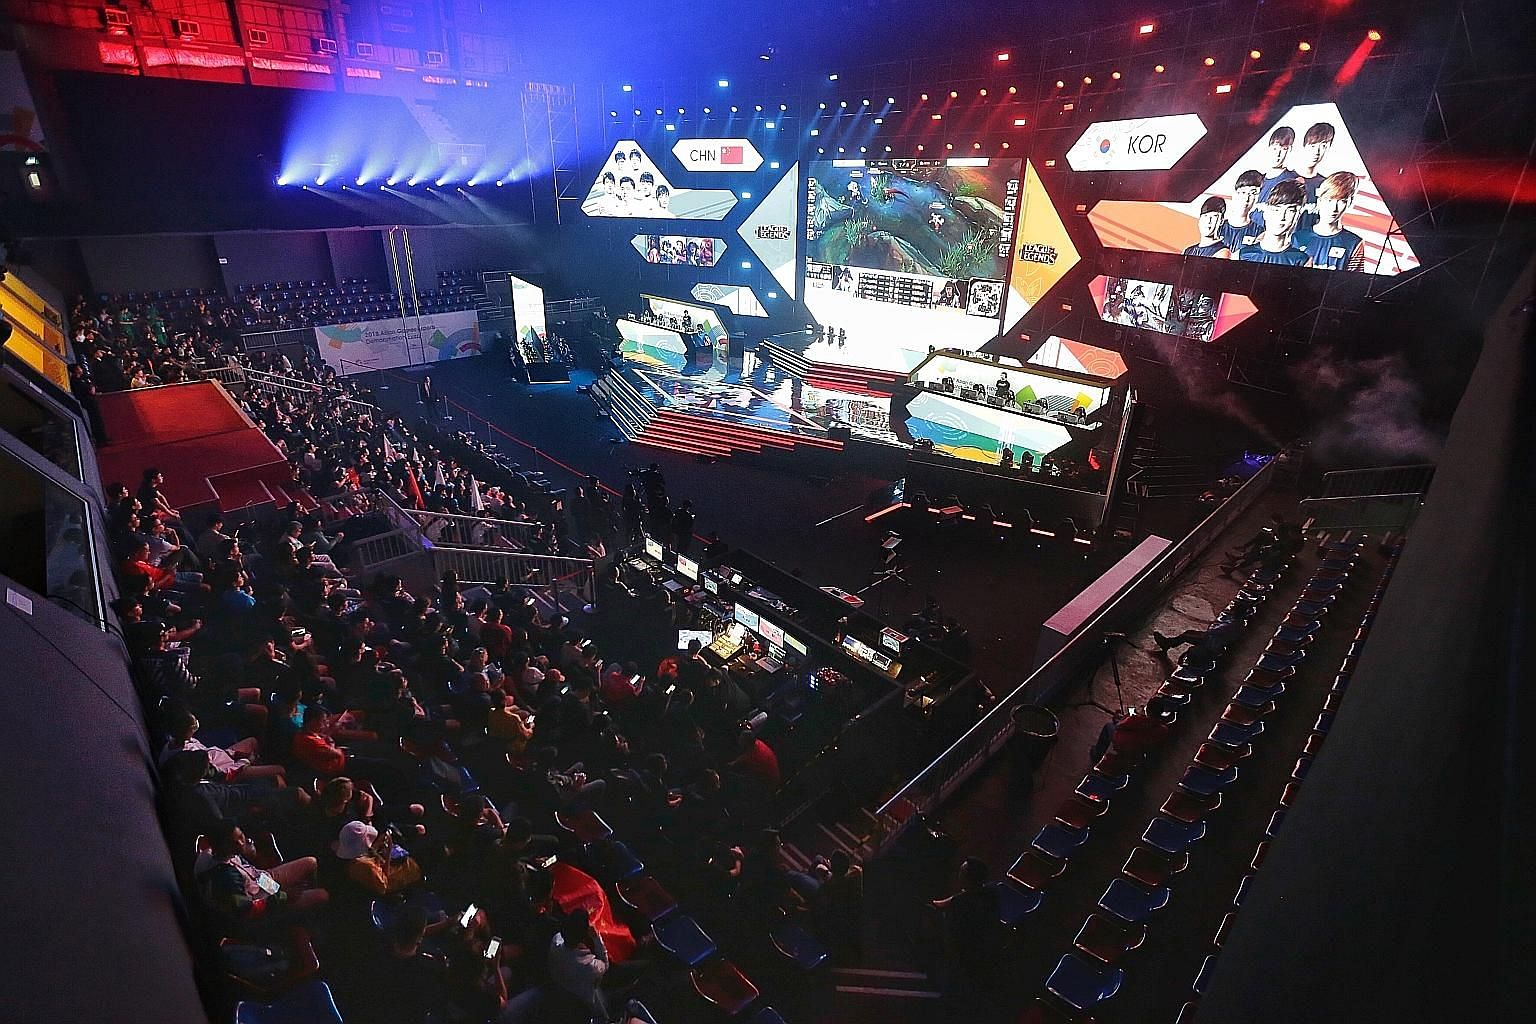 Making its appearance at the Asian Games in Jakarta as an exhibition sport, e-sports will debut as a medal event when the next Asian Games are held in China in 2022.